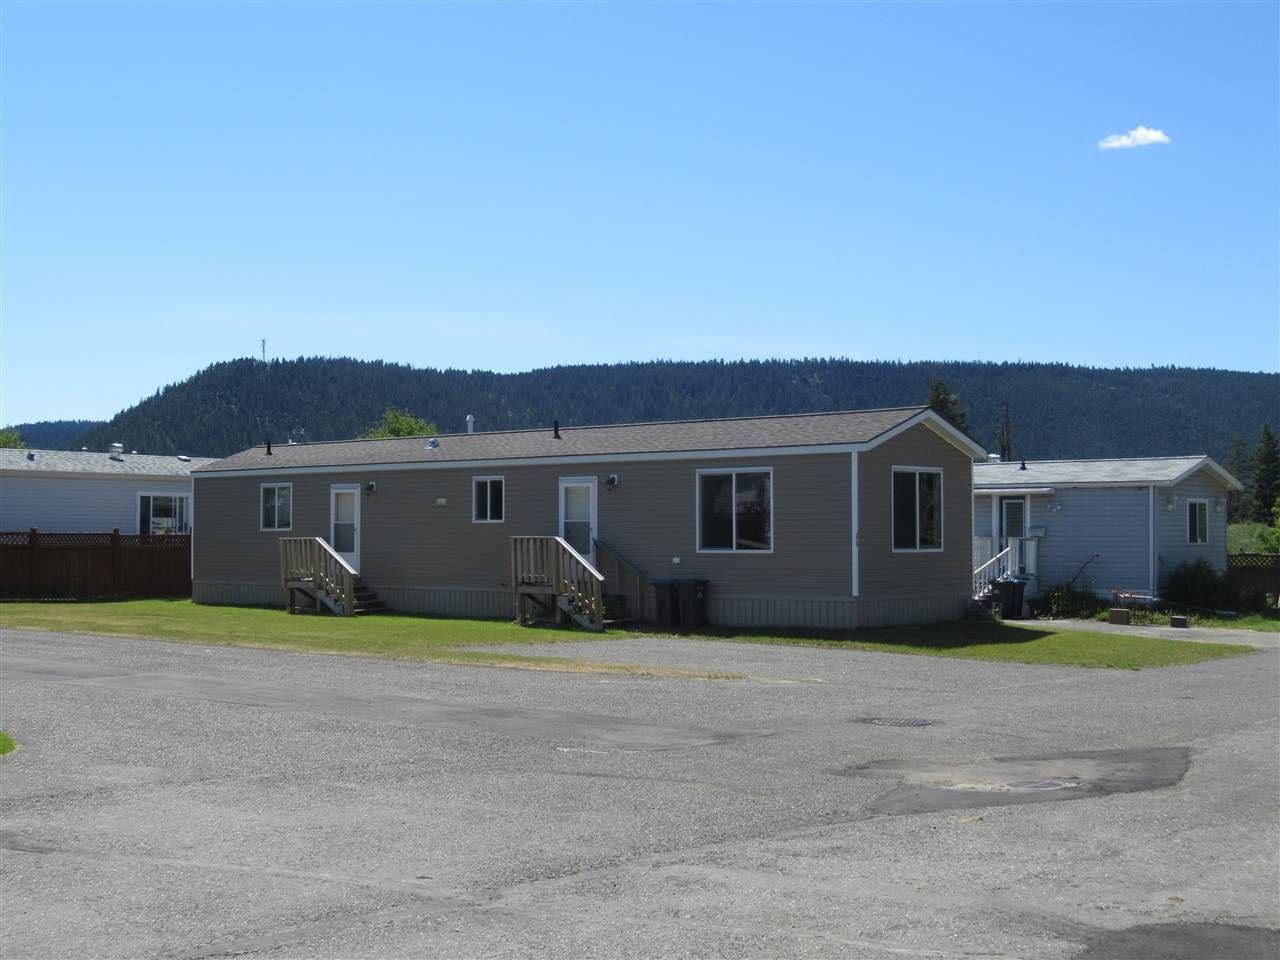 """Main Photo: 66 1400 WESTERN Avenue in Williams Lake: Williams Lake - City Manufactured Home for sale in """"WESTERN ESTATES MOBILE HOME PARK"""" (Williams Lake (Zone 27))  : MLS®# R2392070"""